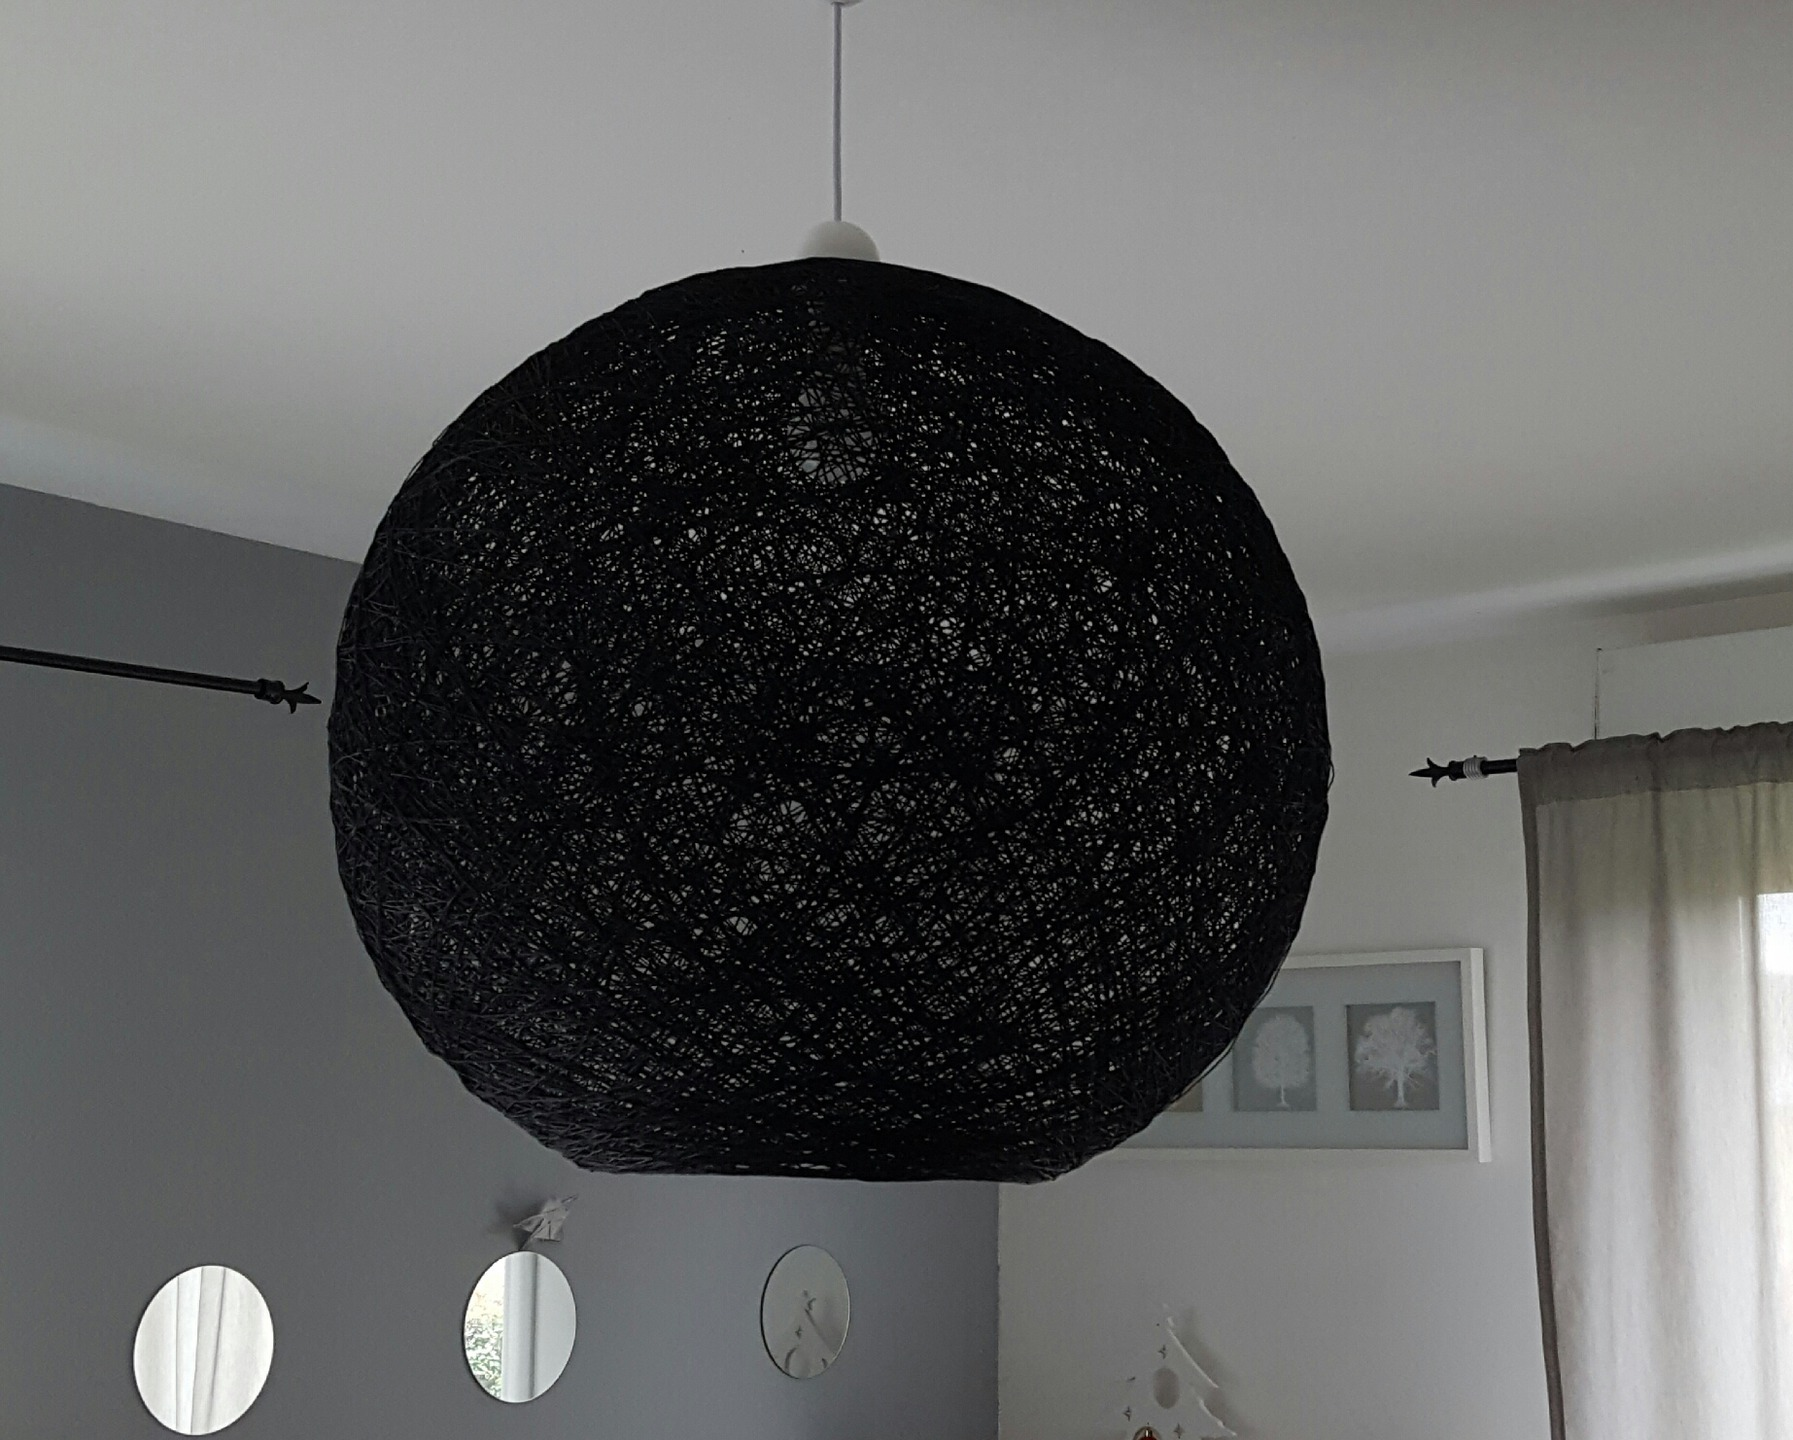 suspension luminaire boule suspension boule en ficelle tress e blanche style d co luminaire. Black Bedroom Furniture Sets. Home Design Ideas